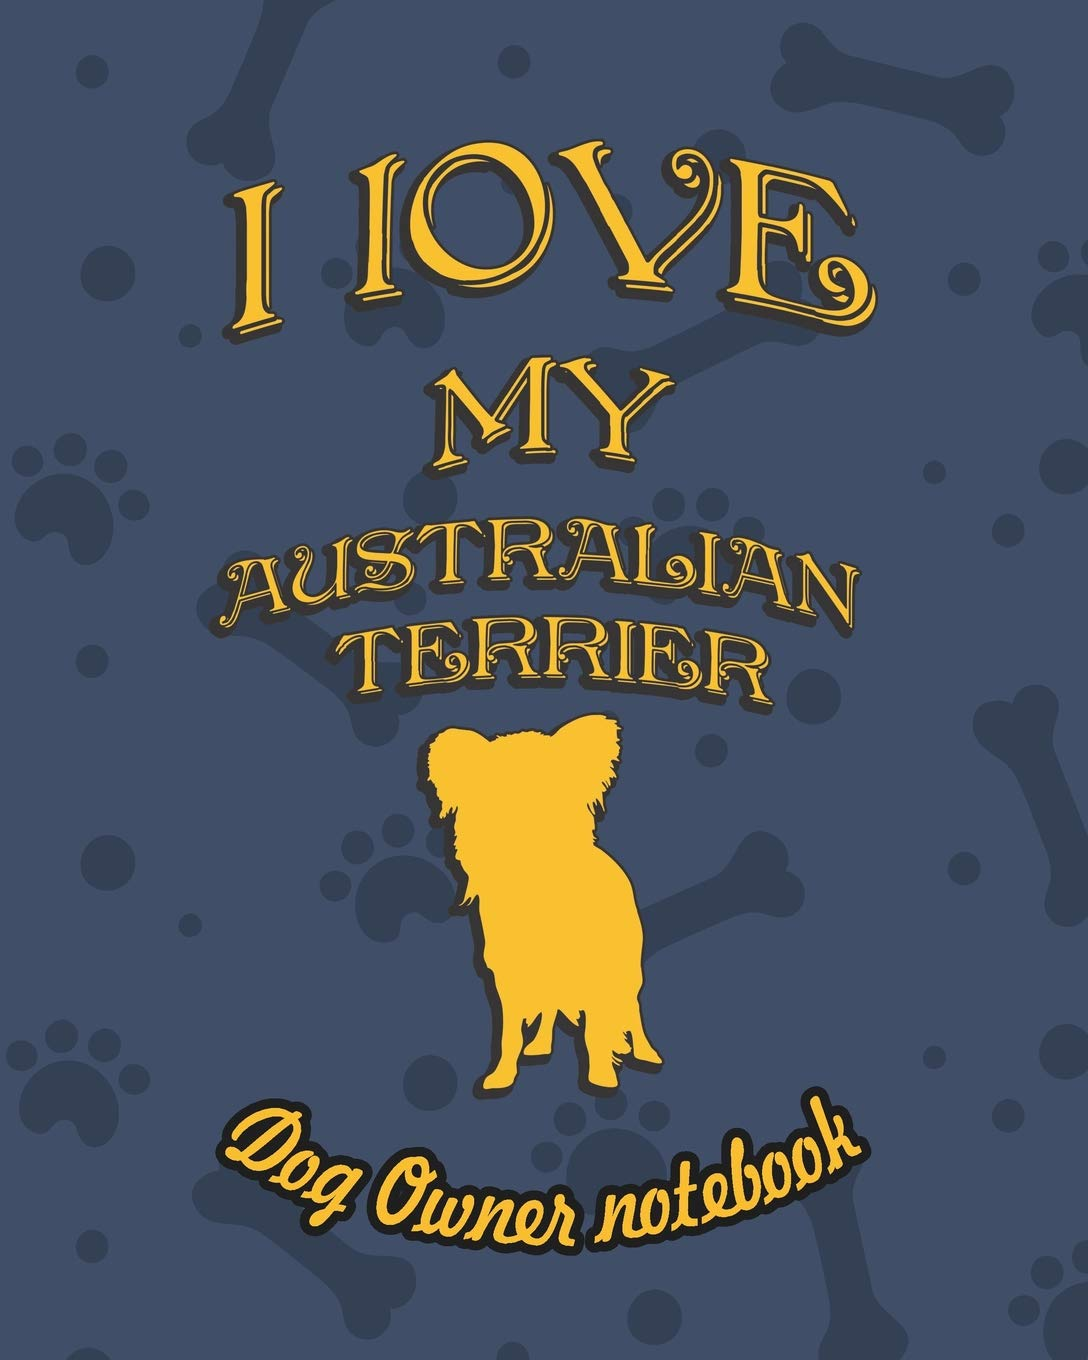 I love my Australian Terrier – Dog owner notebook: Doggy style designed pages for dog owner's to note Training log and daily adventures. (I Love My Dog)